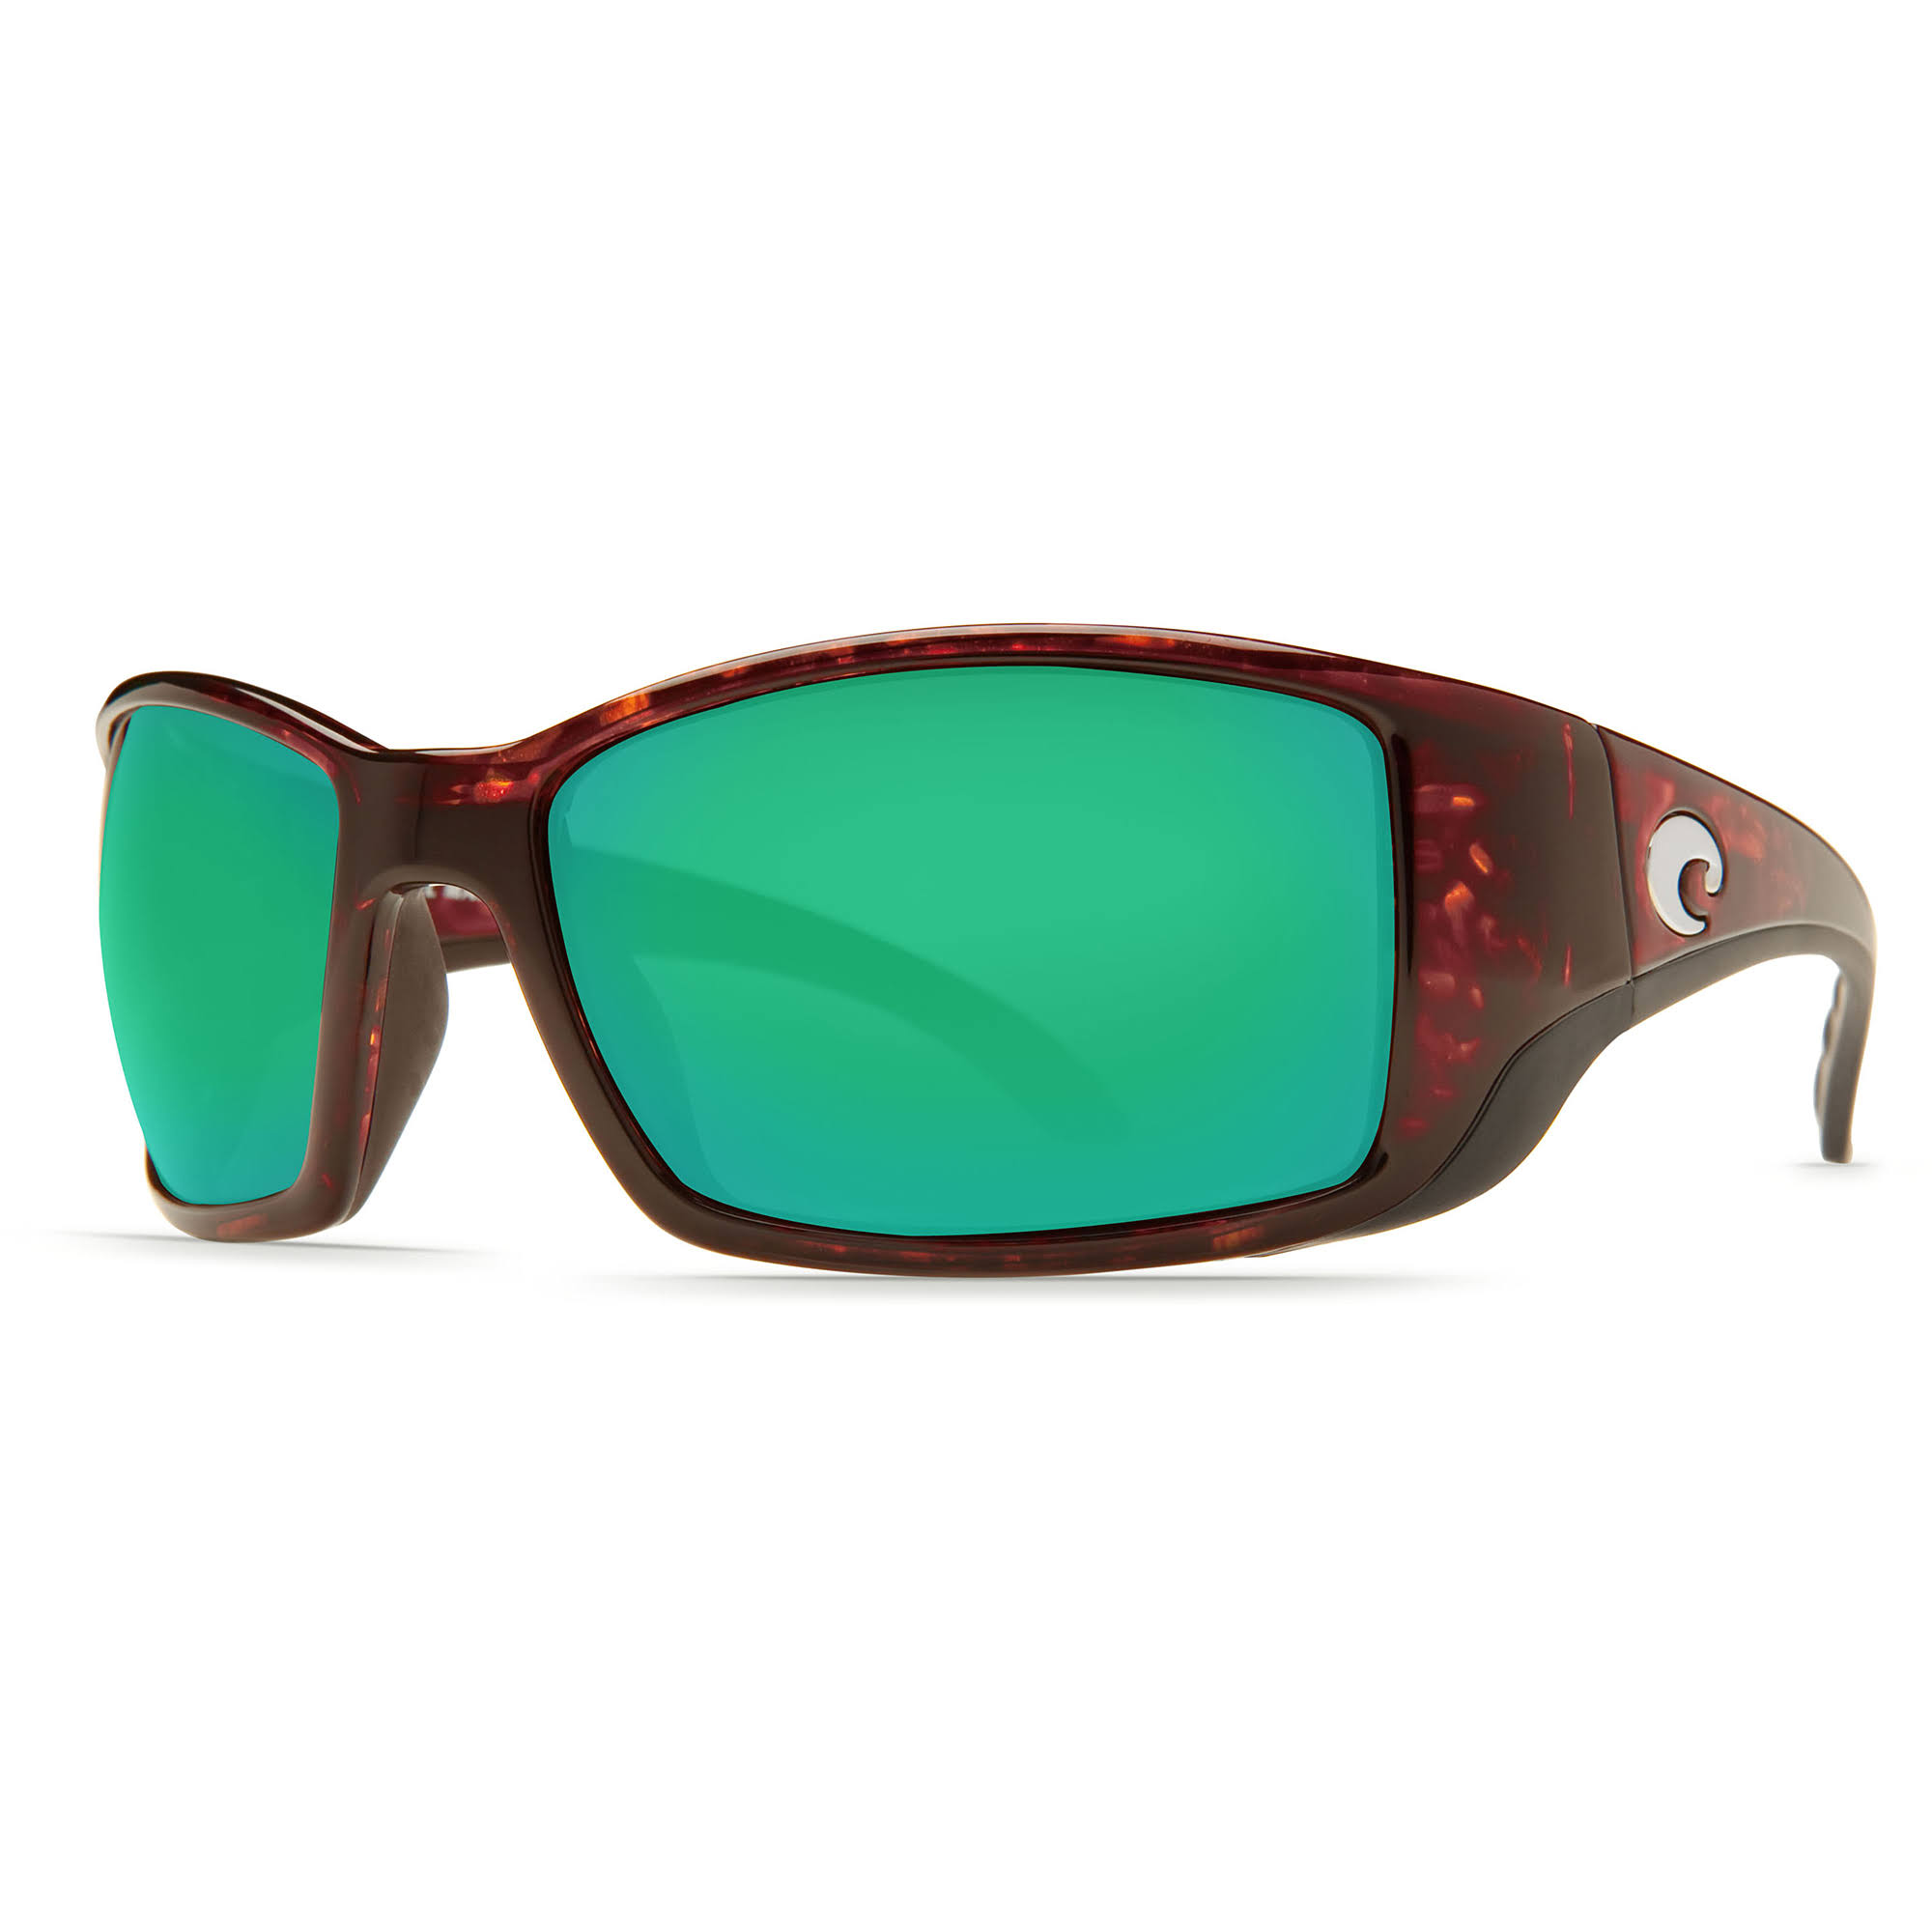 Costa Del Mar Blackfin Sunglasses - Brown Frame, Green Lens, 580p